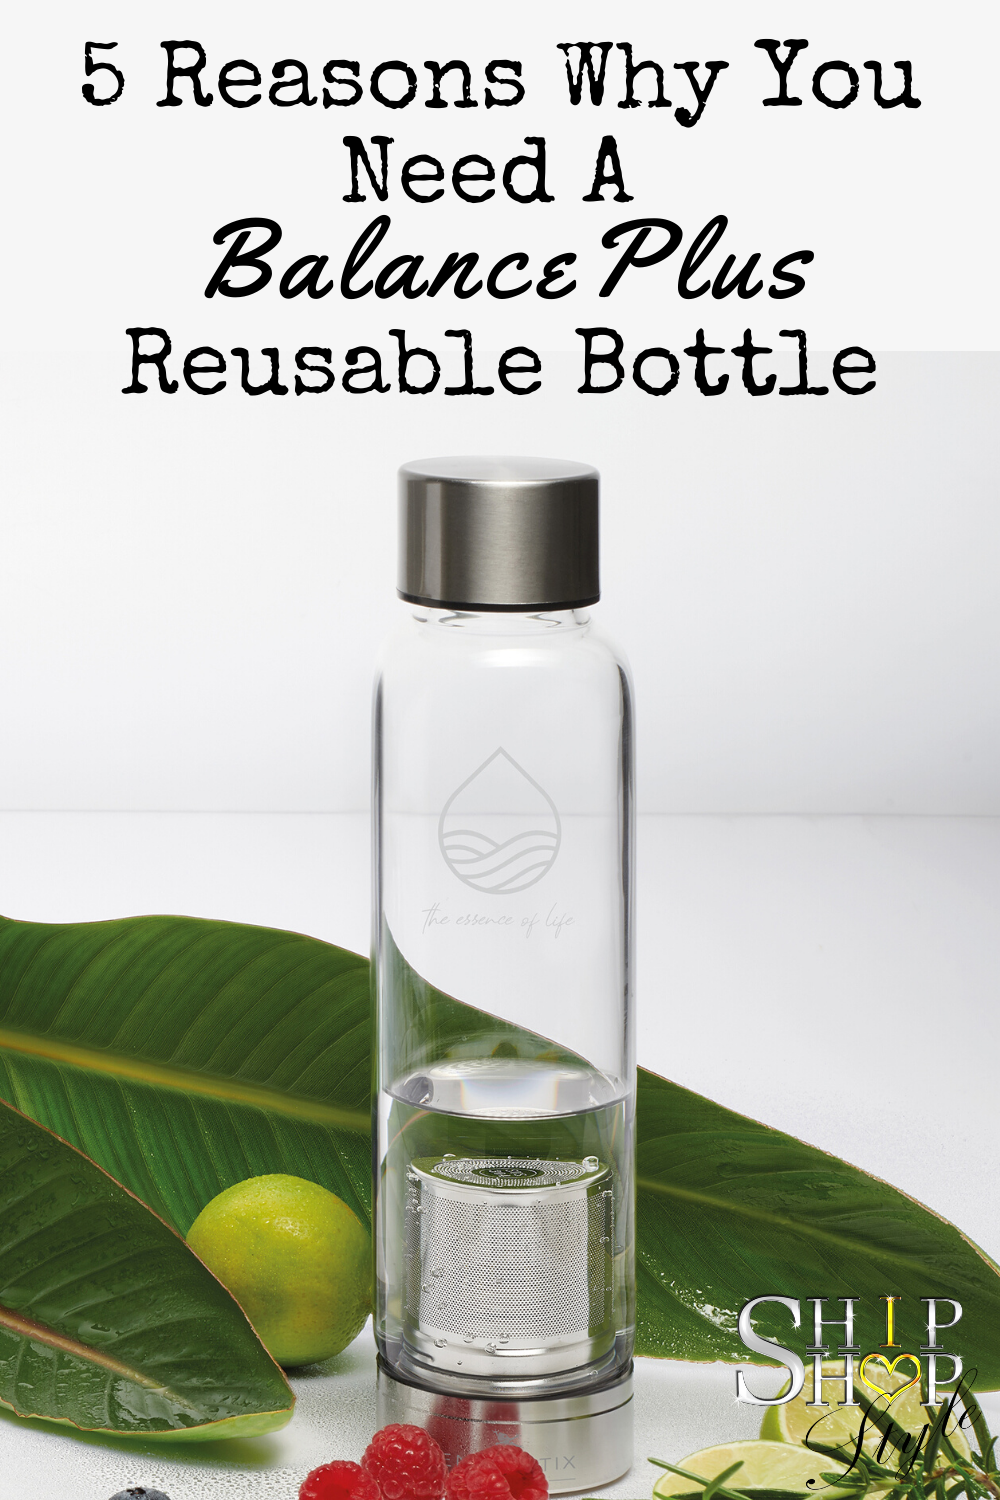 Text says 5 Reasons Why You Need A Balance Plus Reusable Bottle, above a photo of the bottle which is on two large green leafs, next to a lime and a few berries